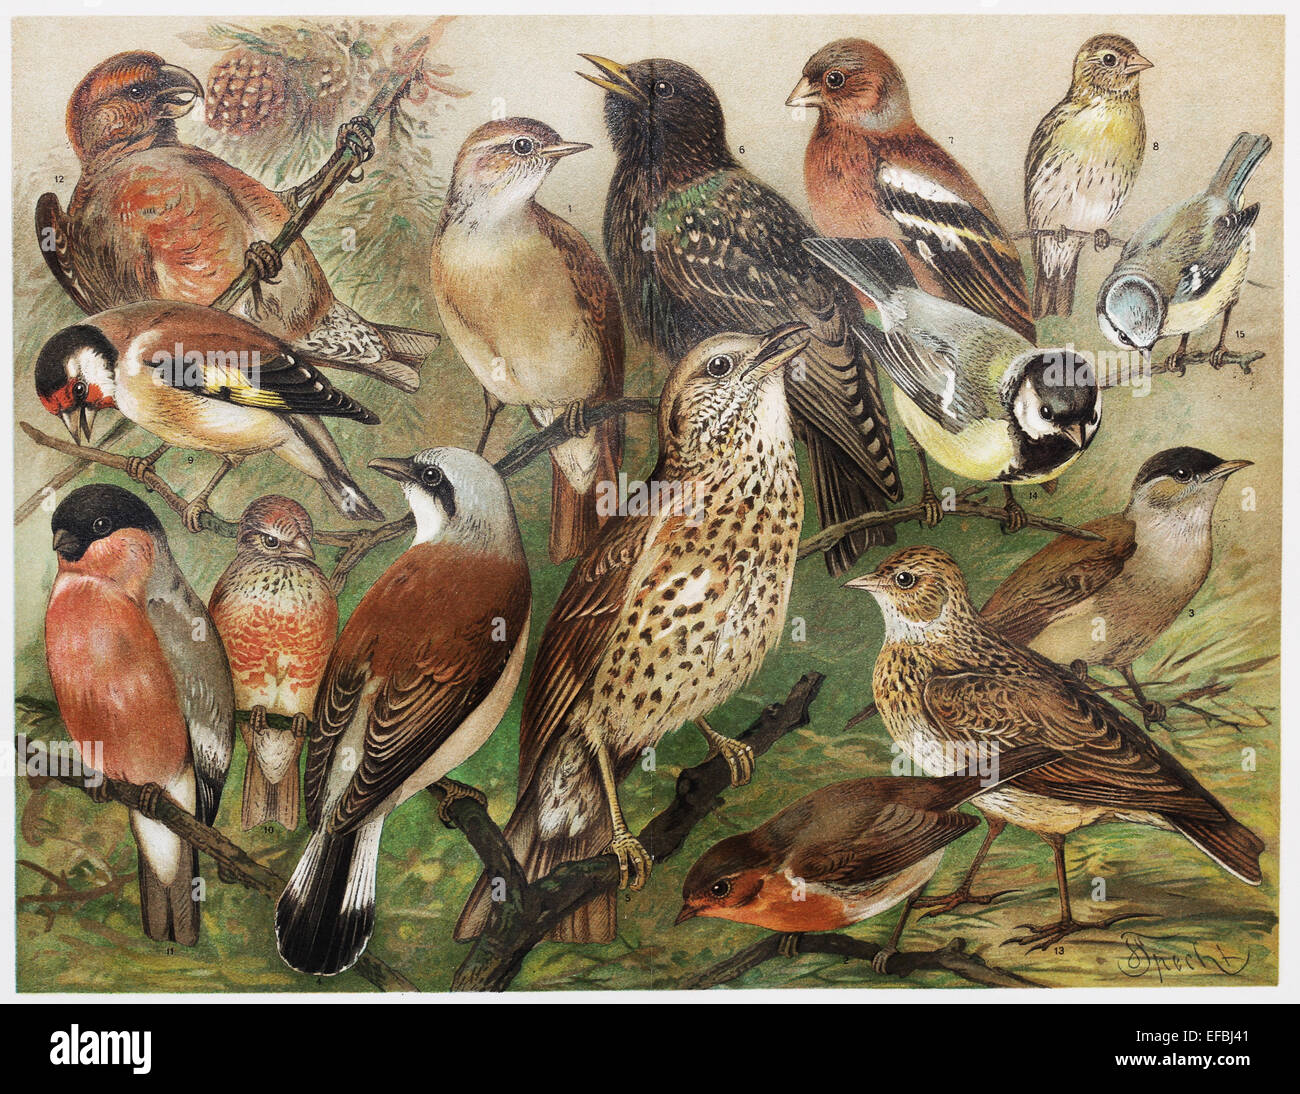 Vintage drawing of European cage birds from late 1800's - Stock Image